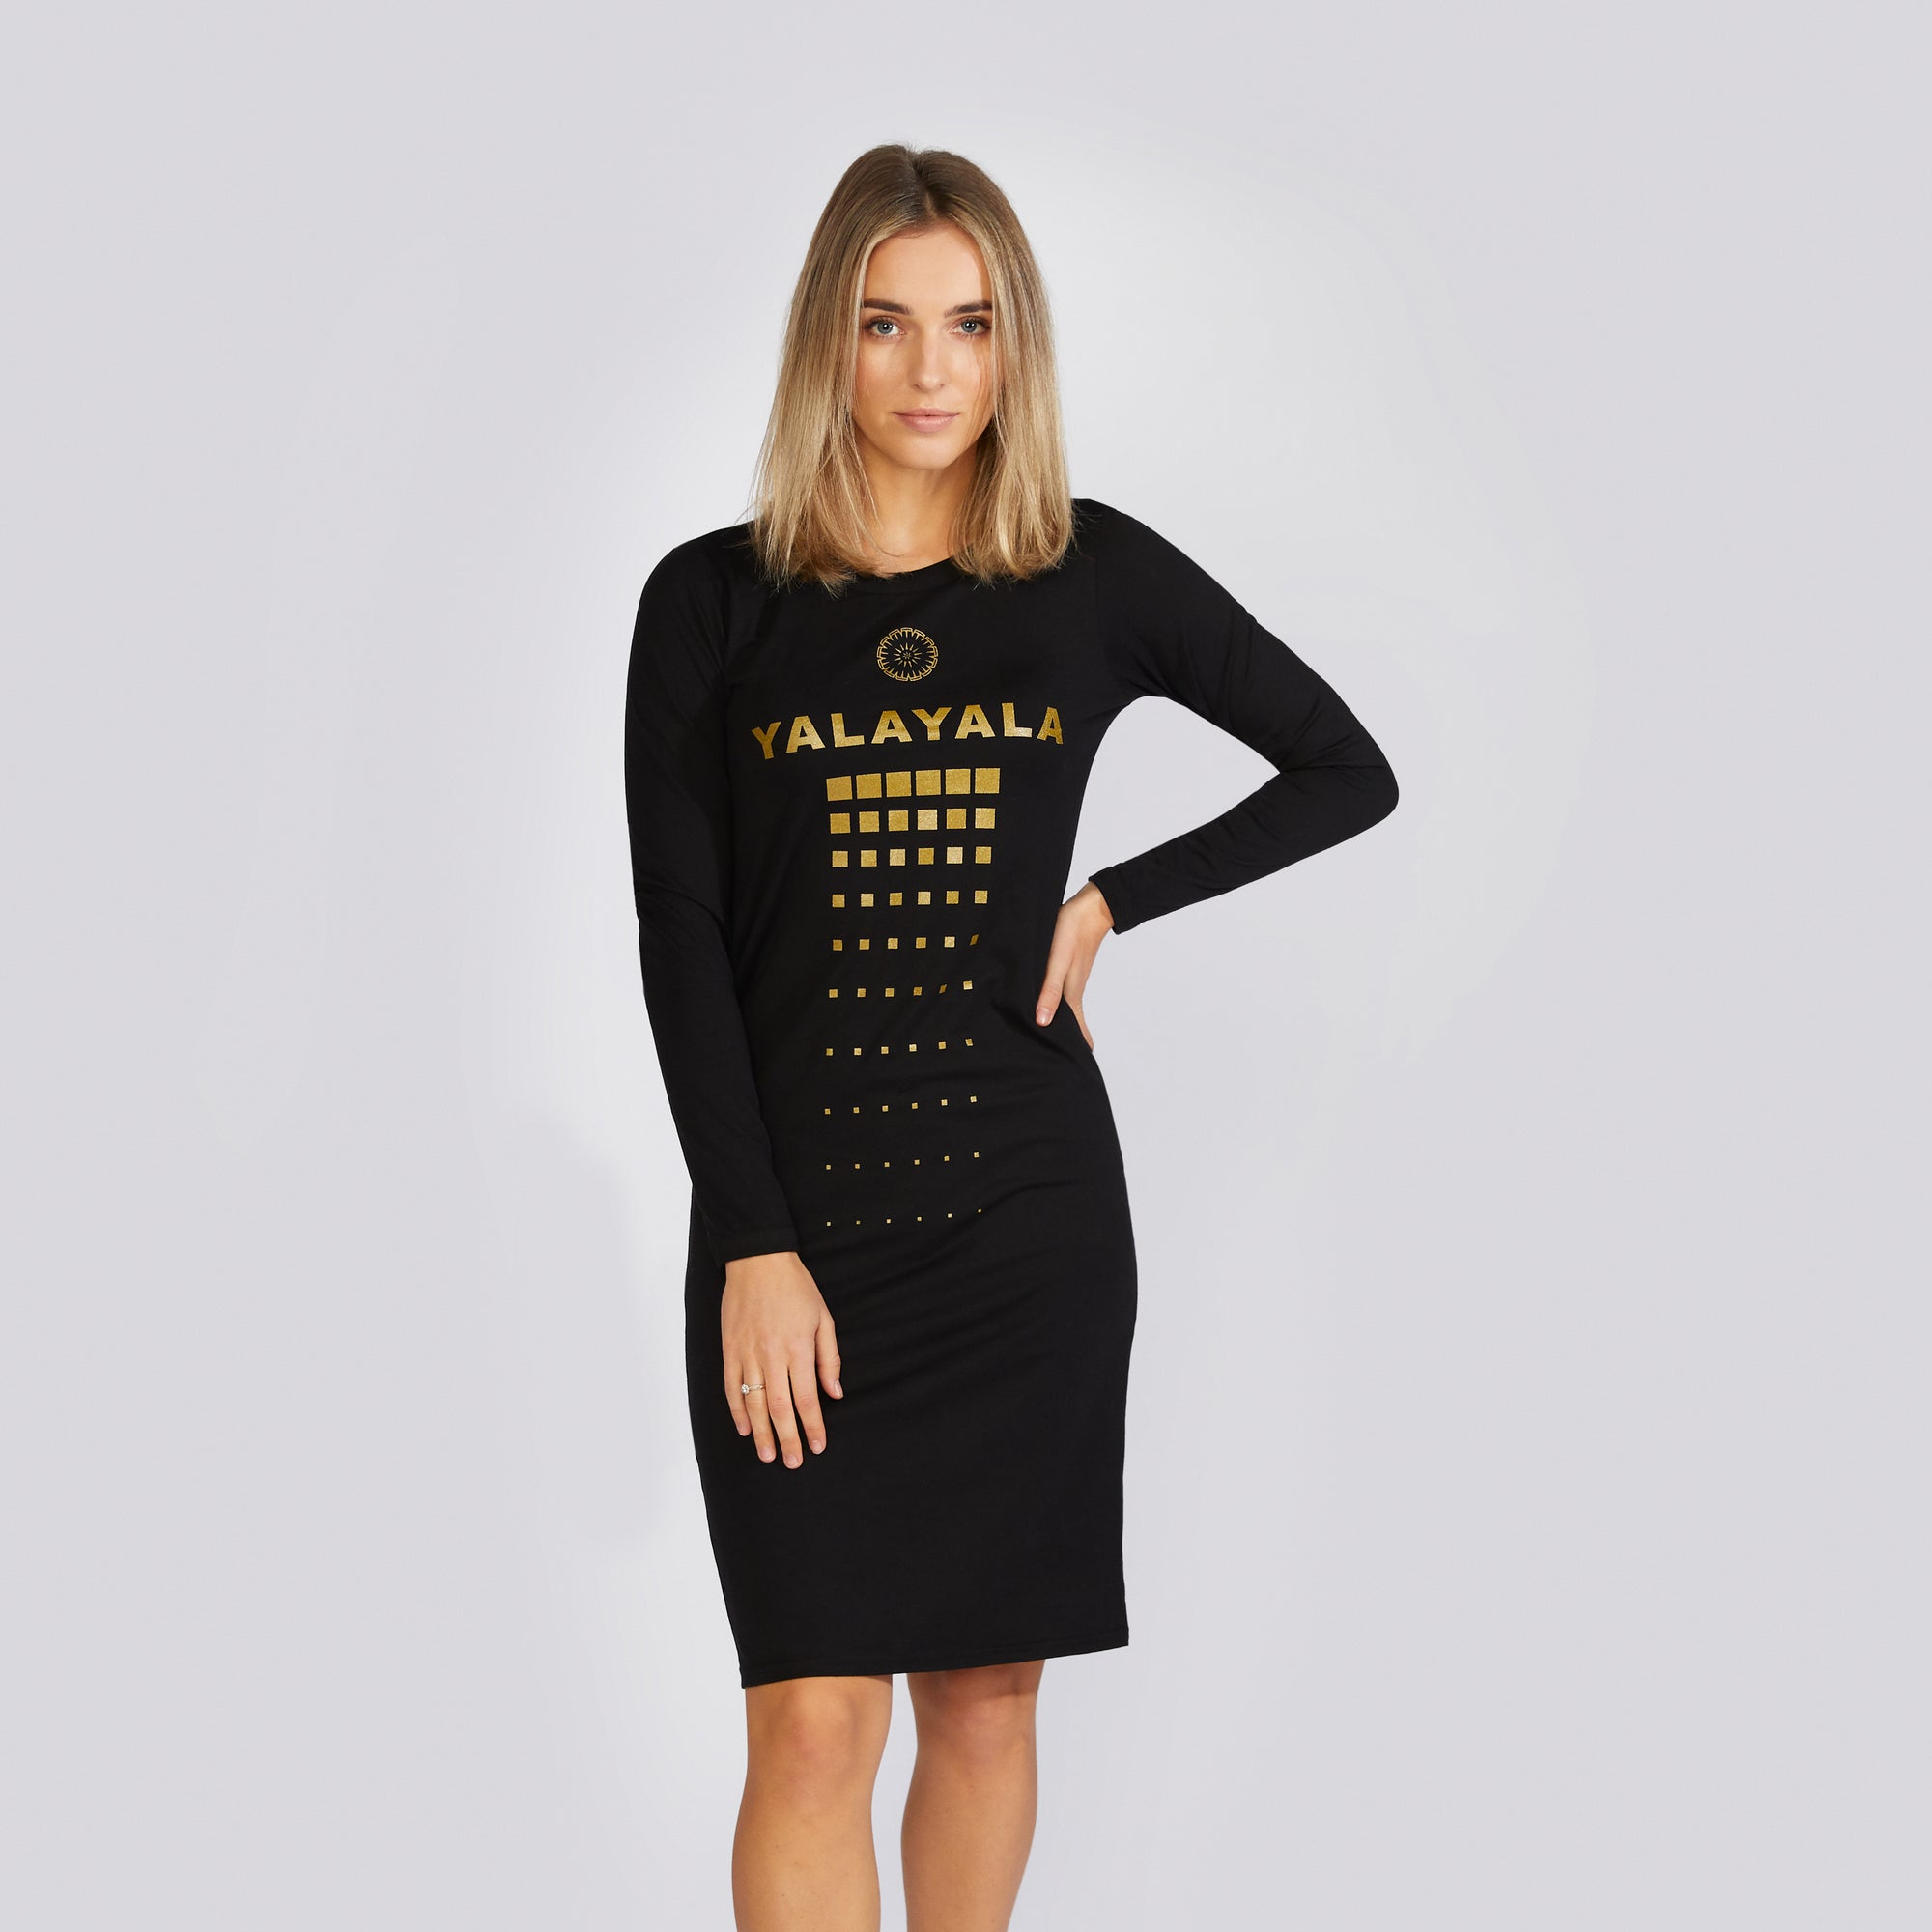 Set Tee Shirt Dress